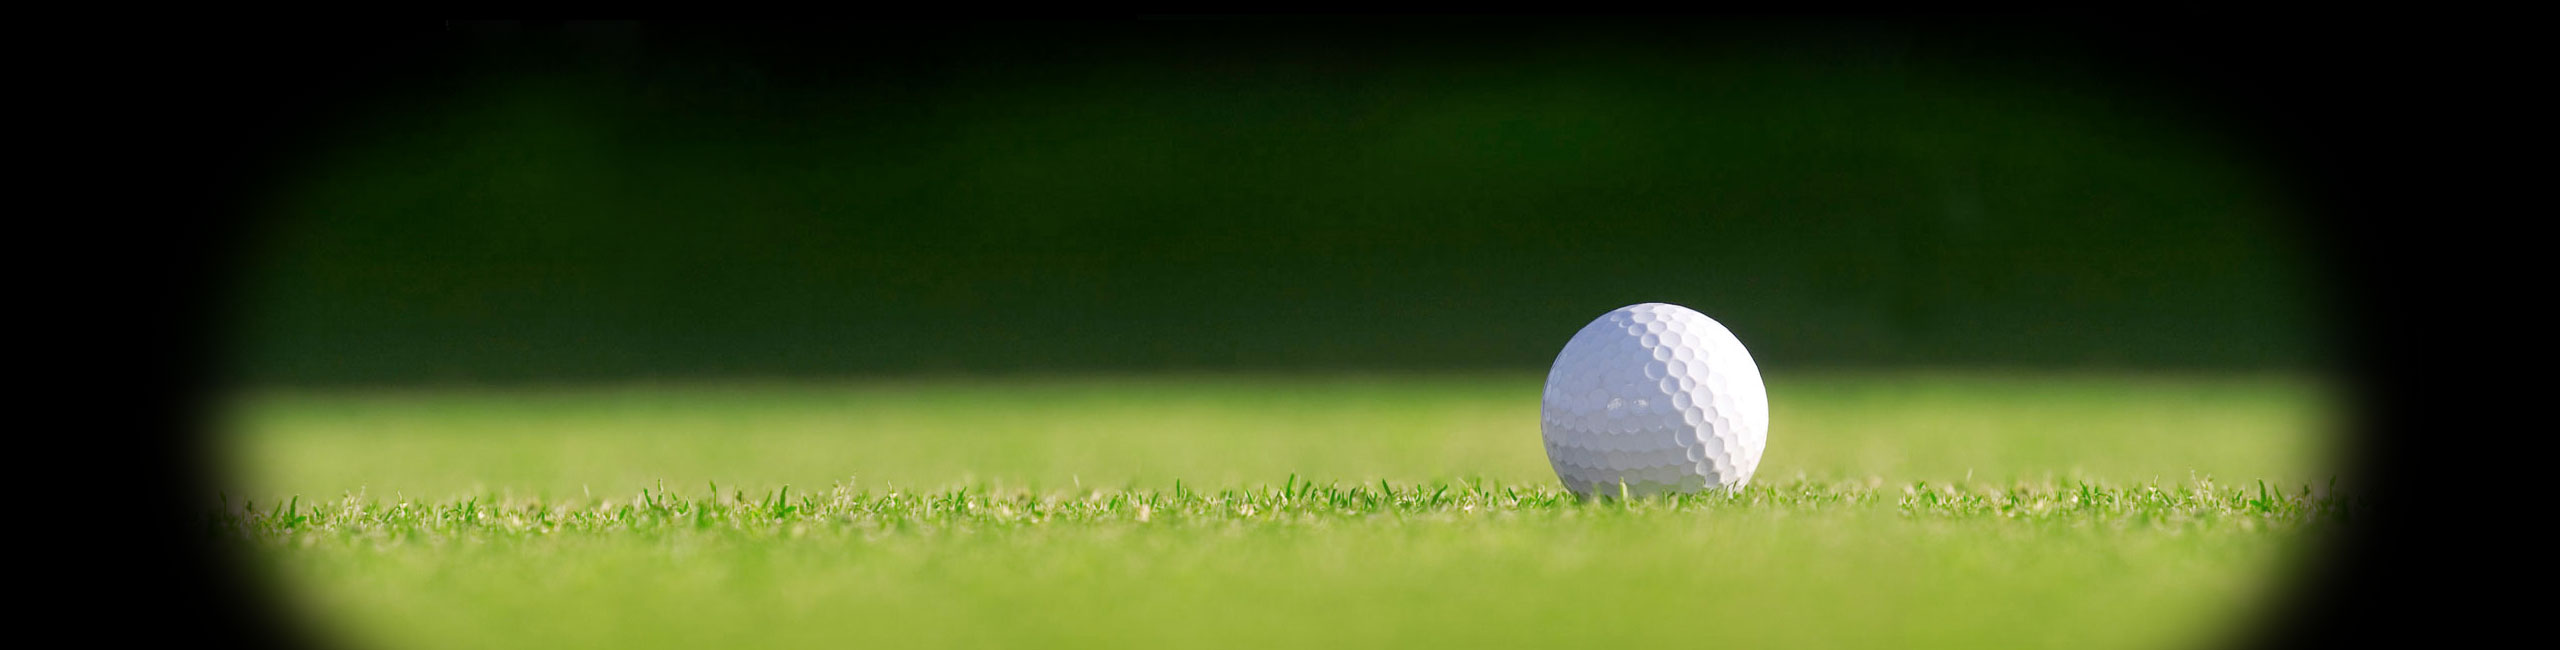 Support the Lehman Child Care Center: Attend the Second Annual Golf Classic